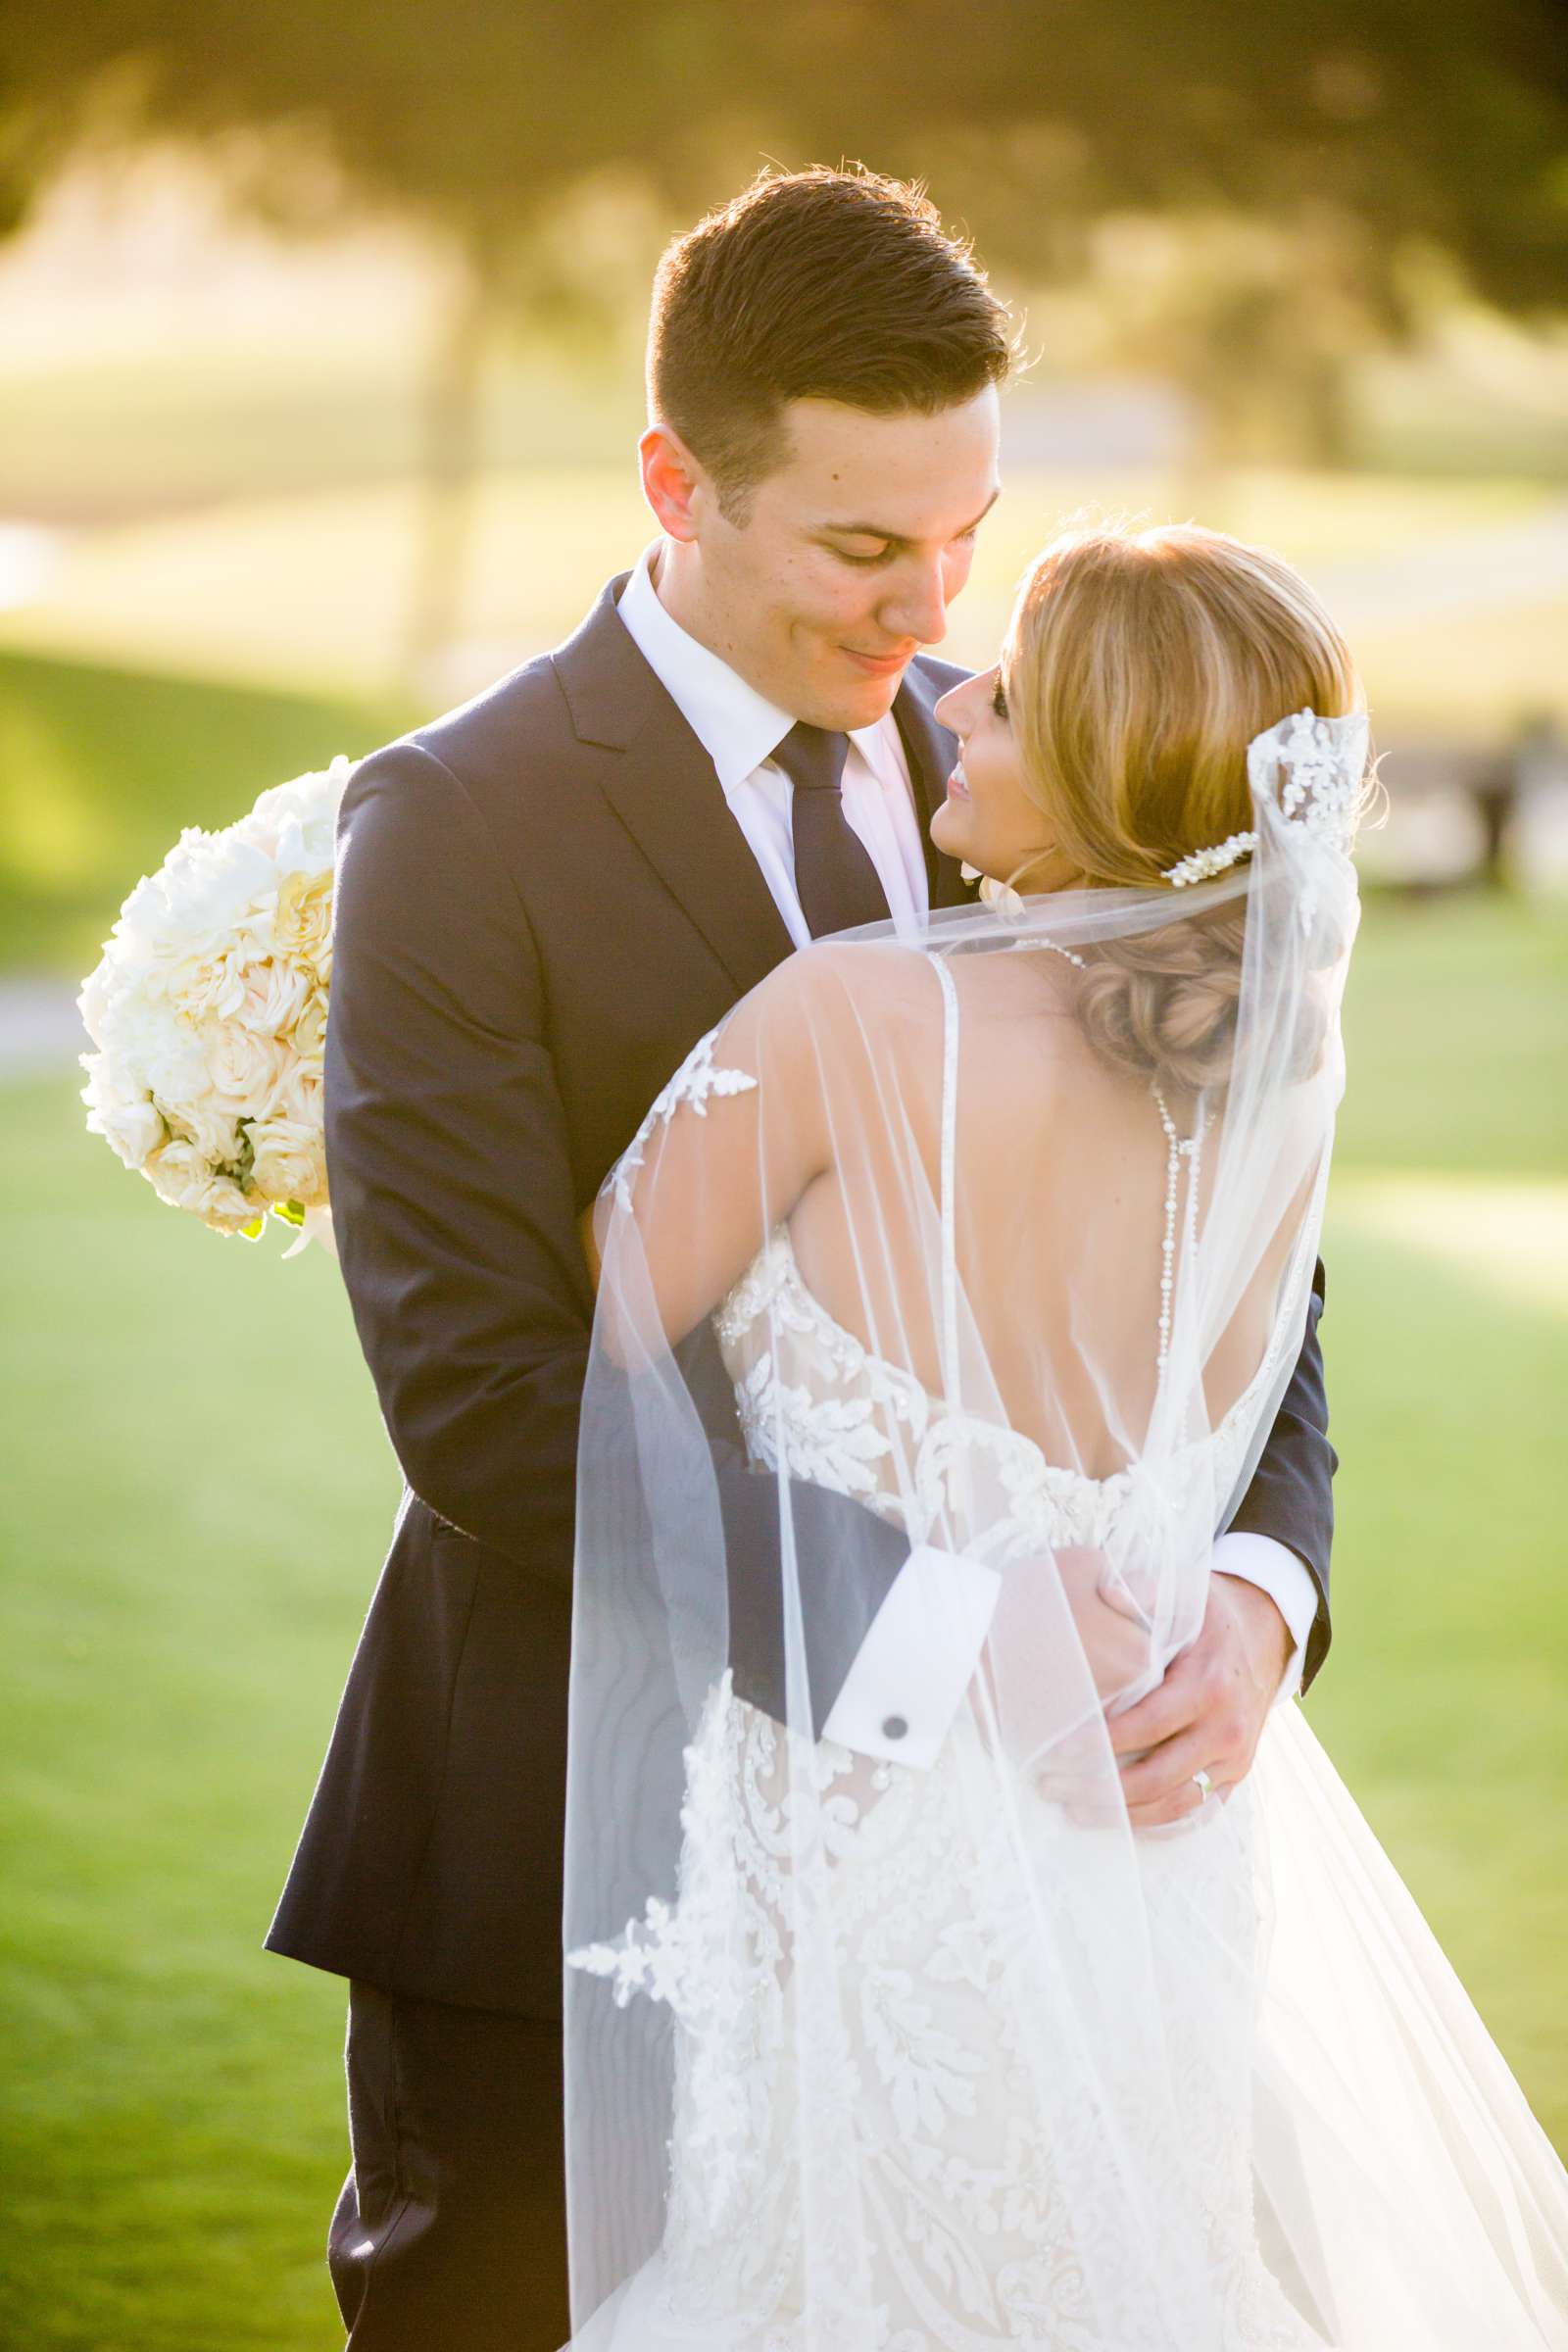 Fairbanks Ranch Country Club Wedding coordinated by Monarch Weddings, Gabriella and Kyle Wedding Photo #110 by True Photography